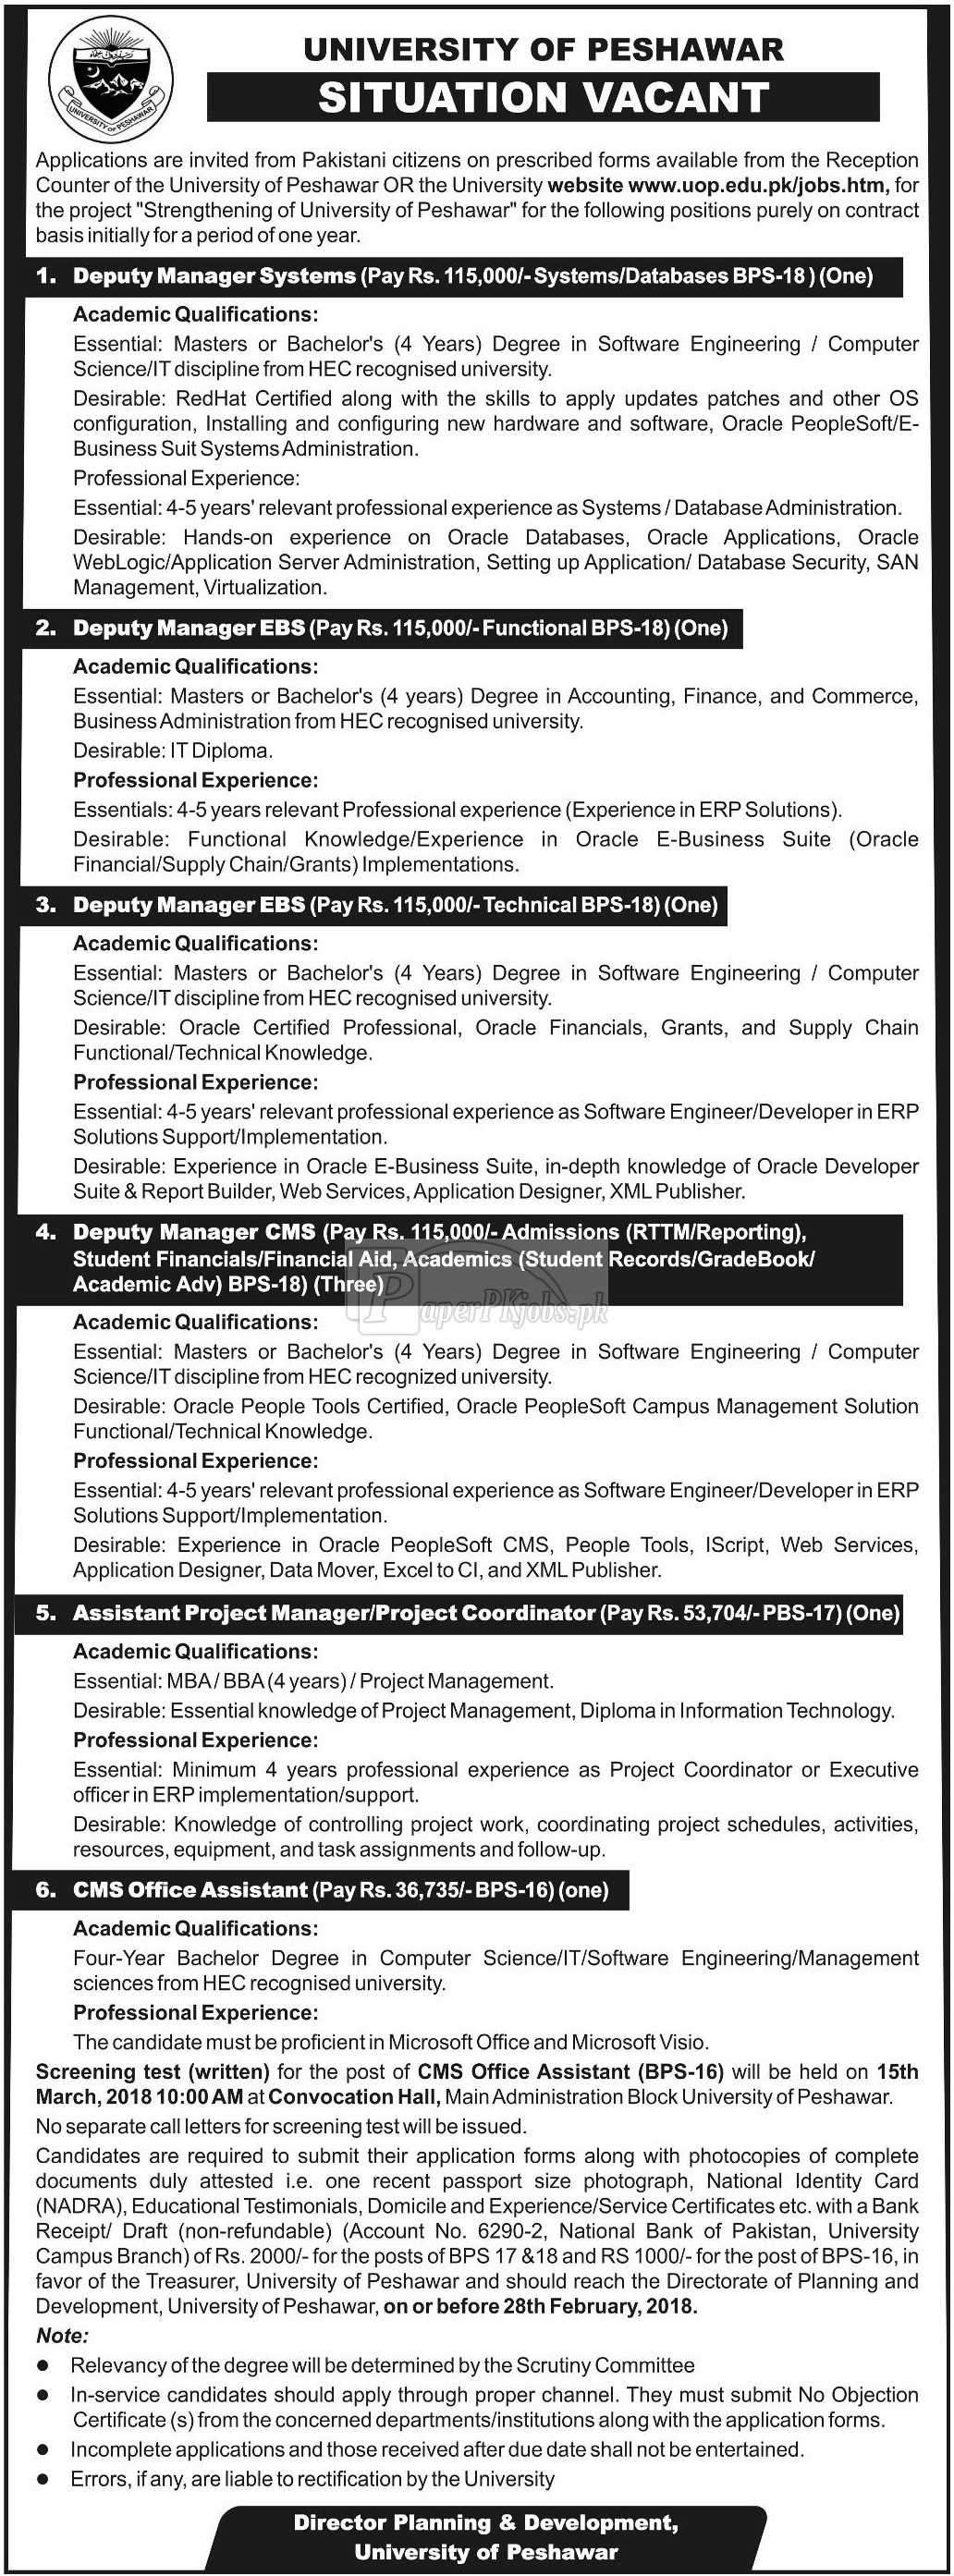 University of Peshawar Jobs 2018